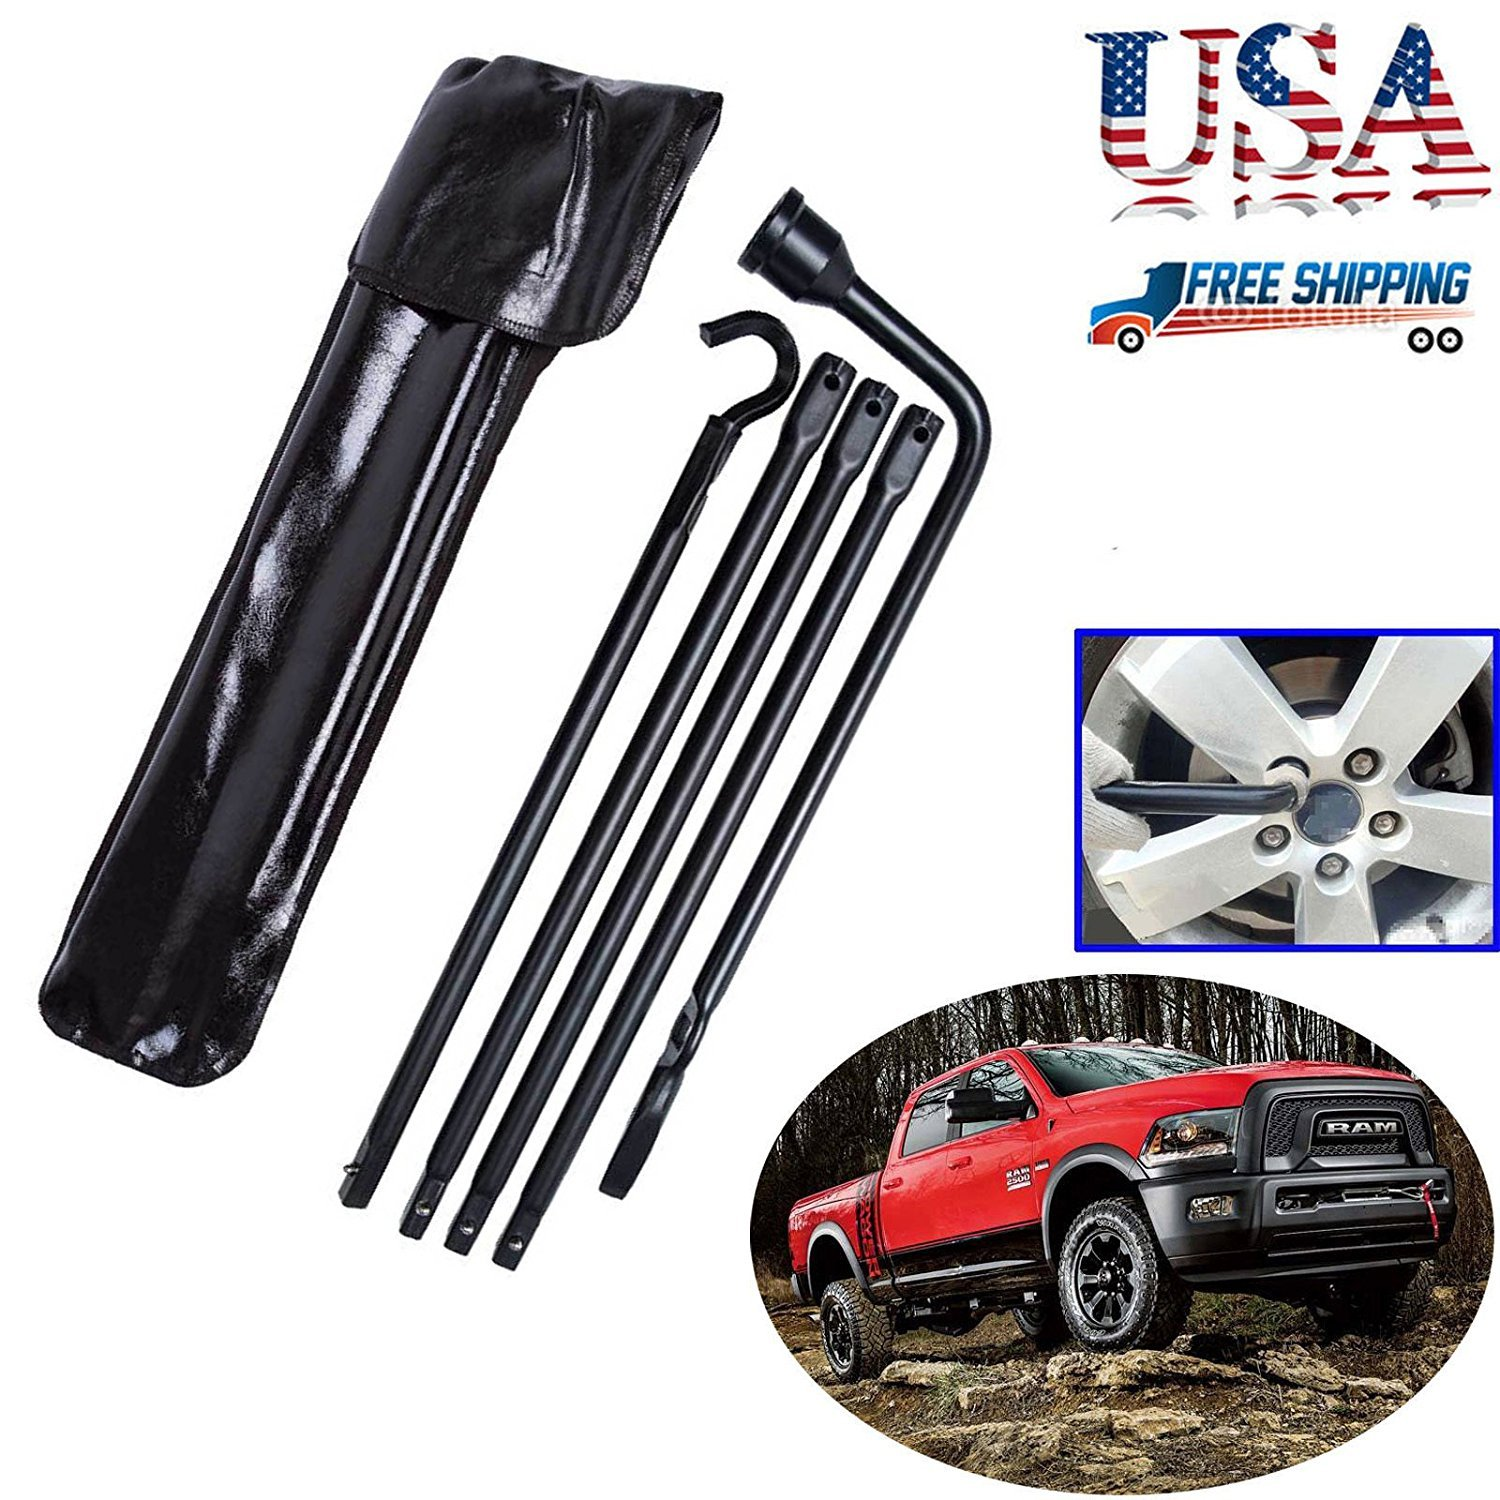 Truck Spare Tire Changing Repair Tool for Ford F150 2004-2014 Car Wheel Remove Jack Replace Irons OEM Lug Nut Wrench Extension 4Pcs Kit Set with Bag US Ship DICN Factory